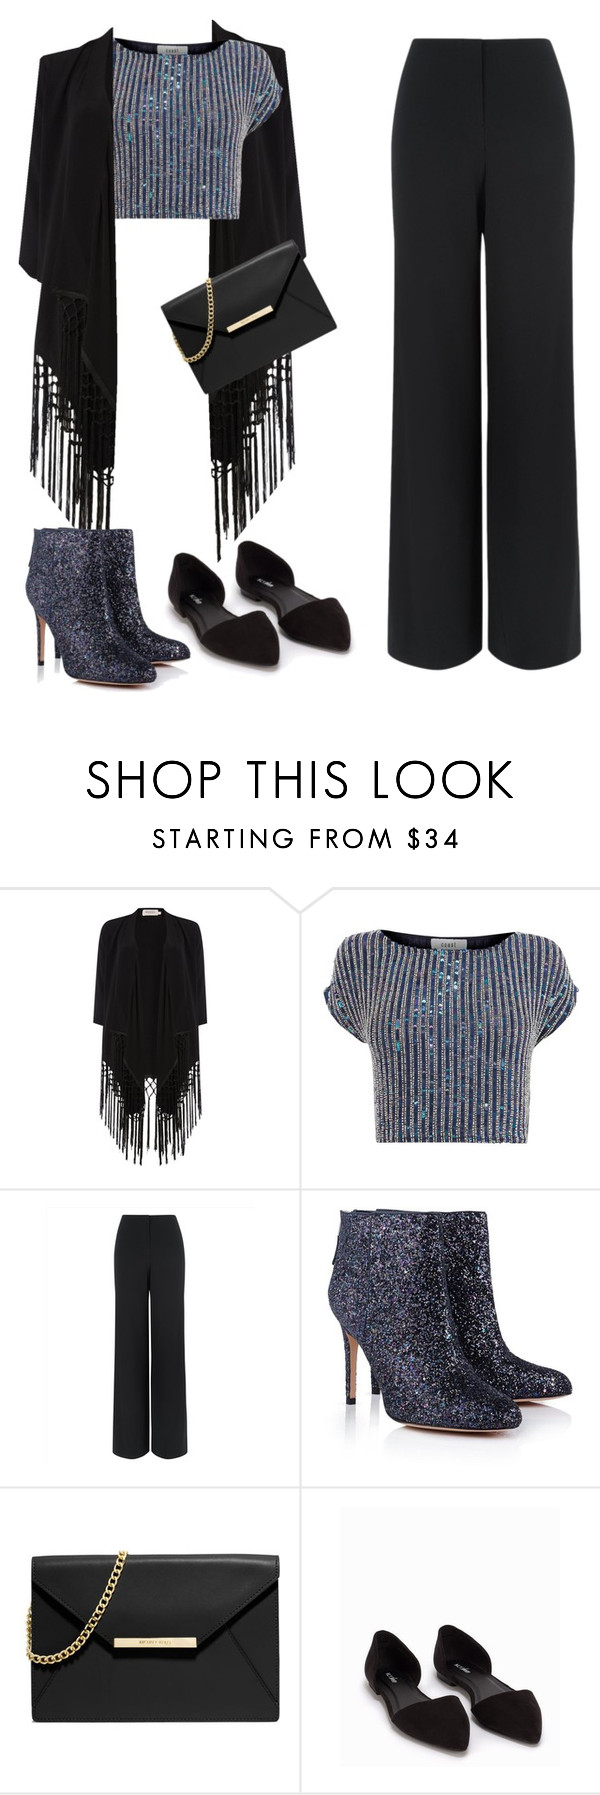 """""""Untitled #38"""" by raregold on Polyvore featuring Soaked in Luxury, Coast, Jaeger, Sam Edelman, MICHAEL Michael Kors and Nly Shoes"""